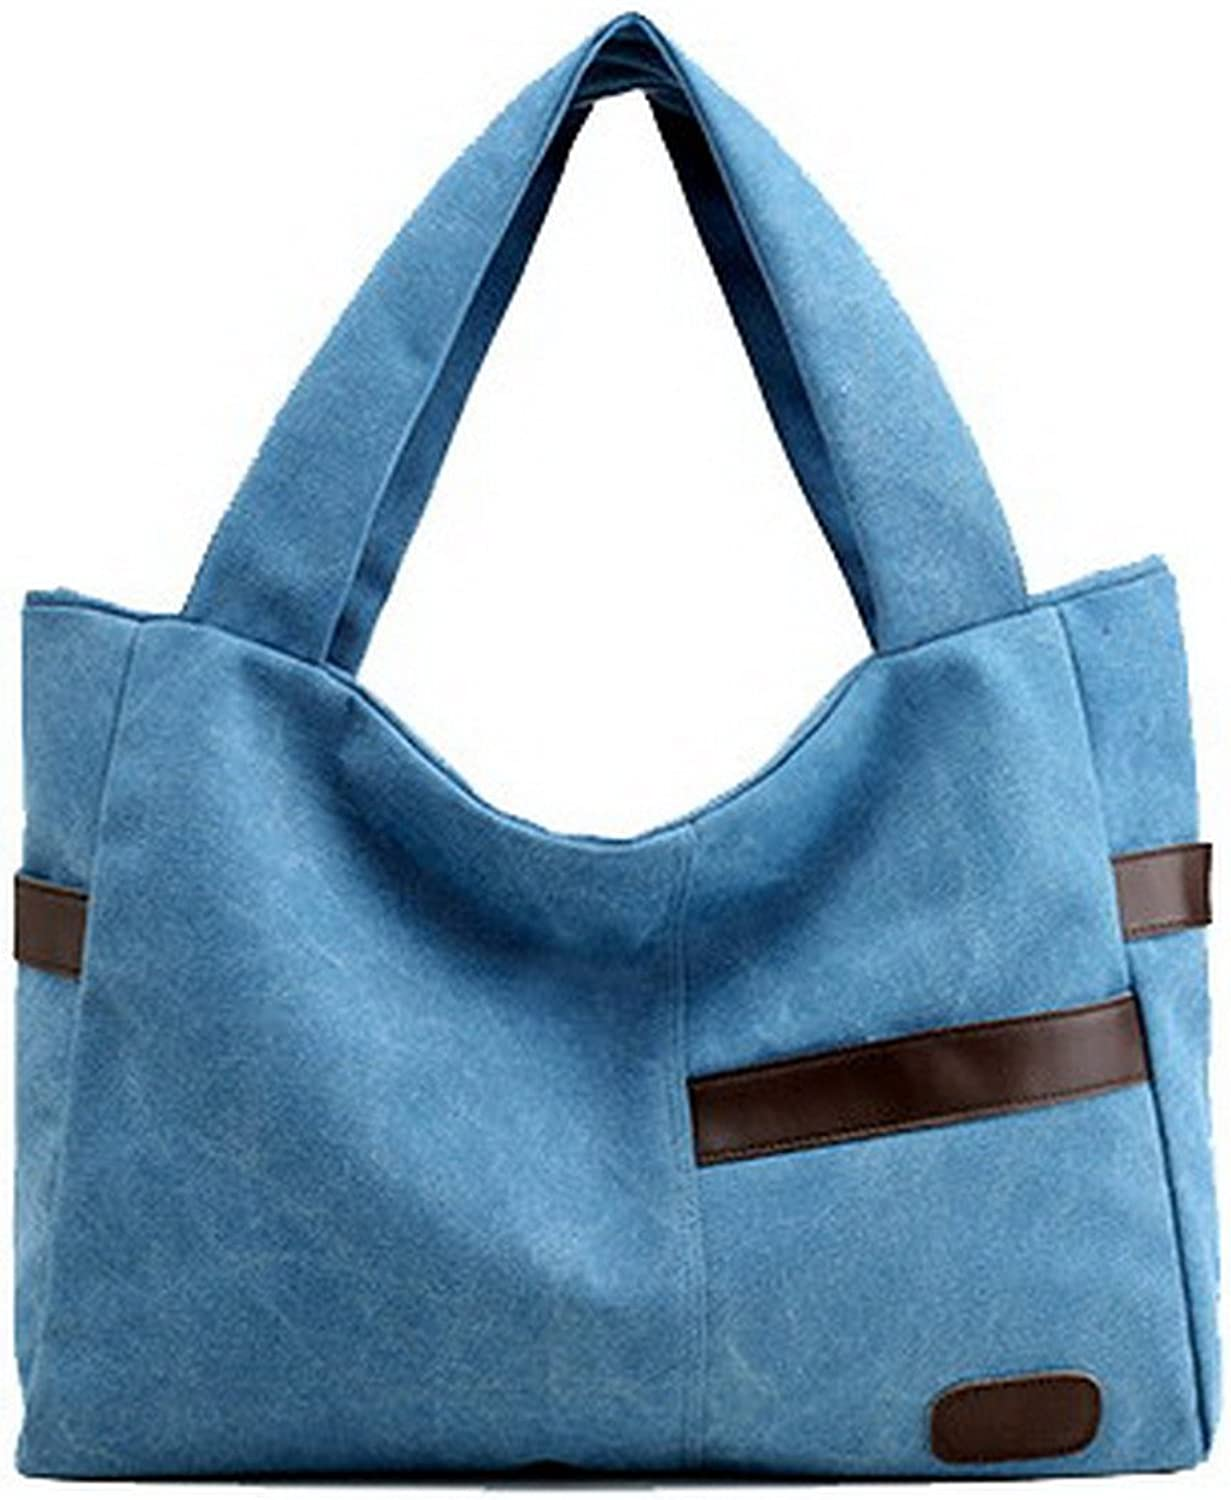 AmoonyFashion Women's Shoulder Bags Party ToteStyle Shopping Canvas Tote Bags, BUTBS181456